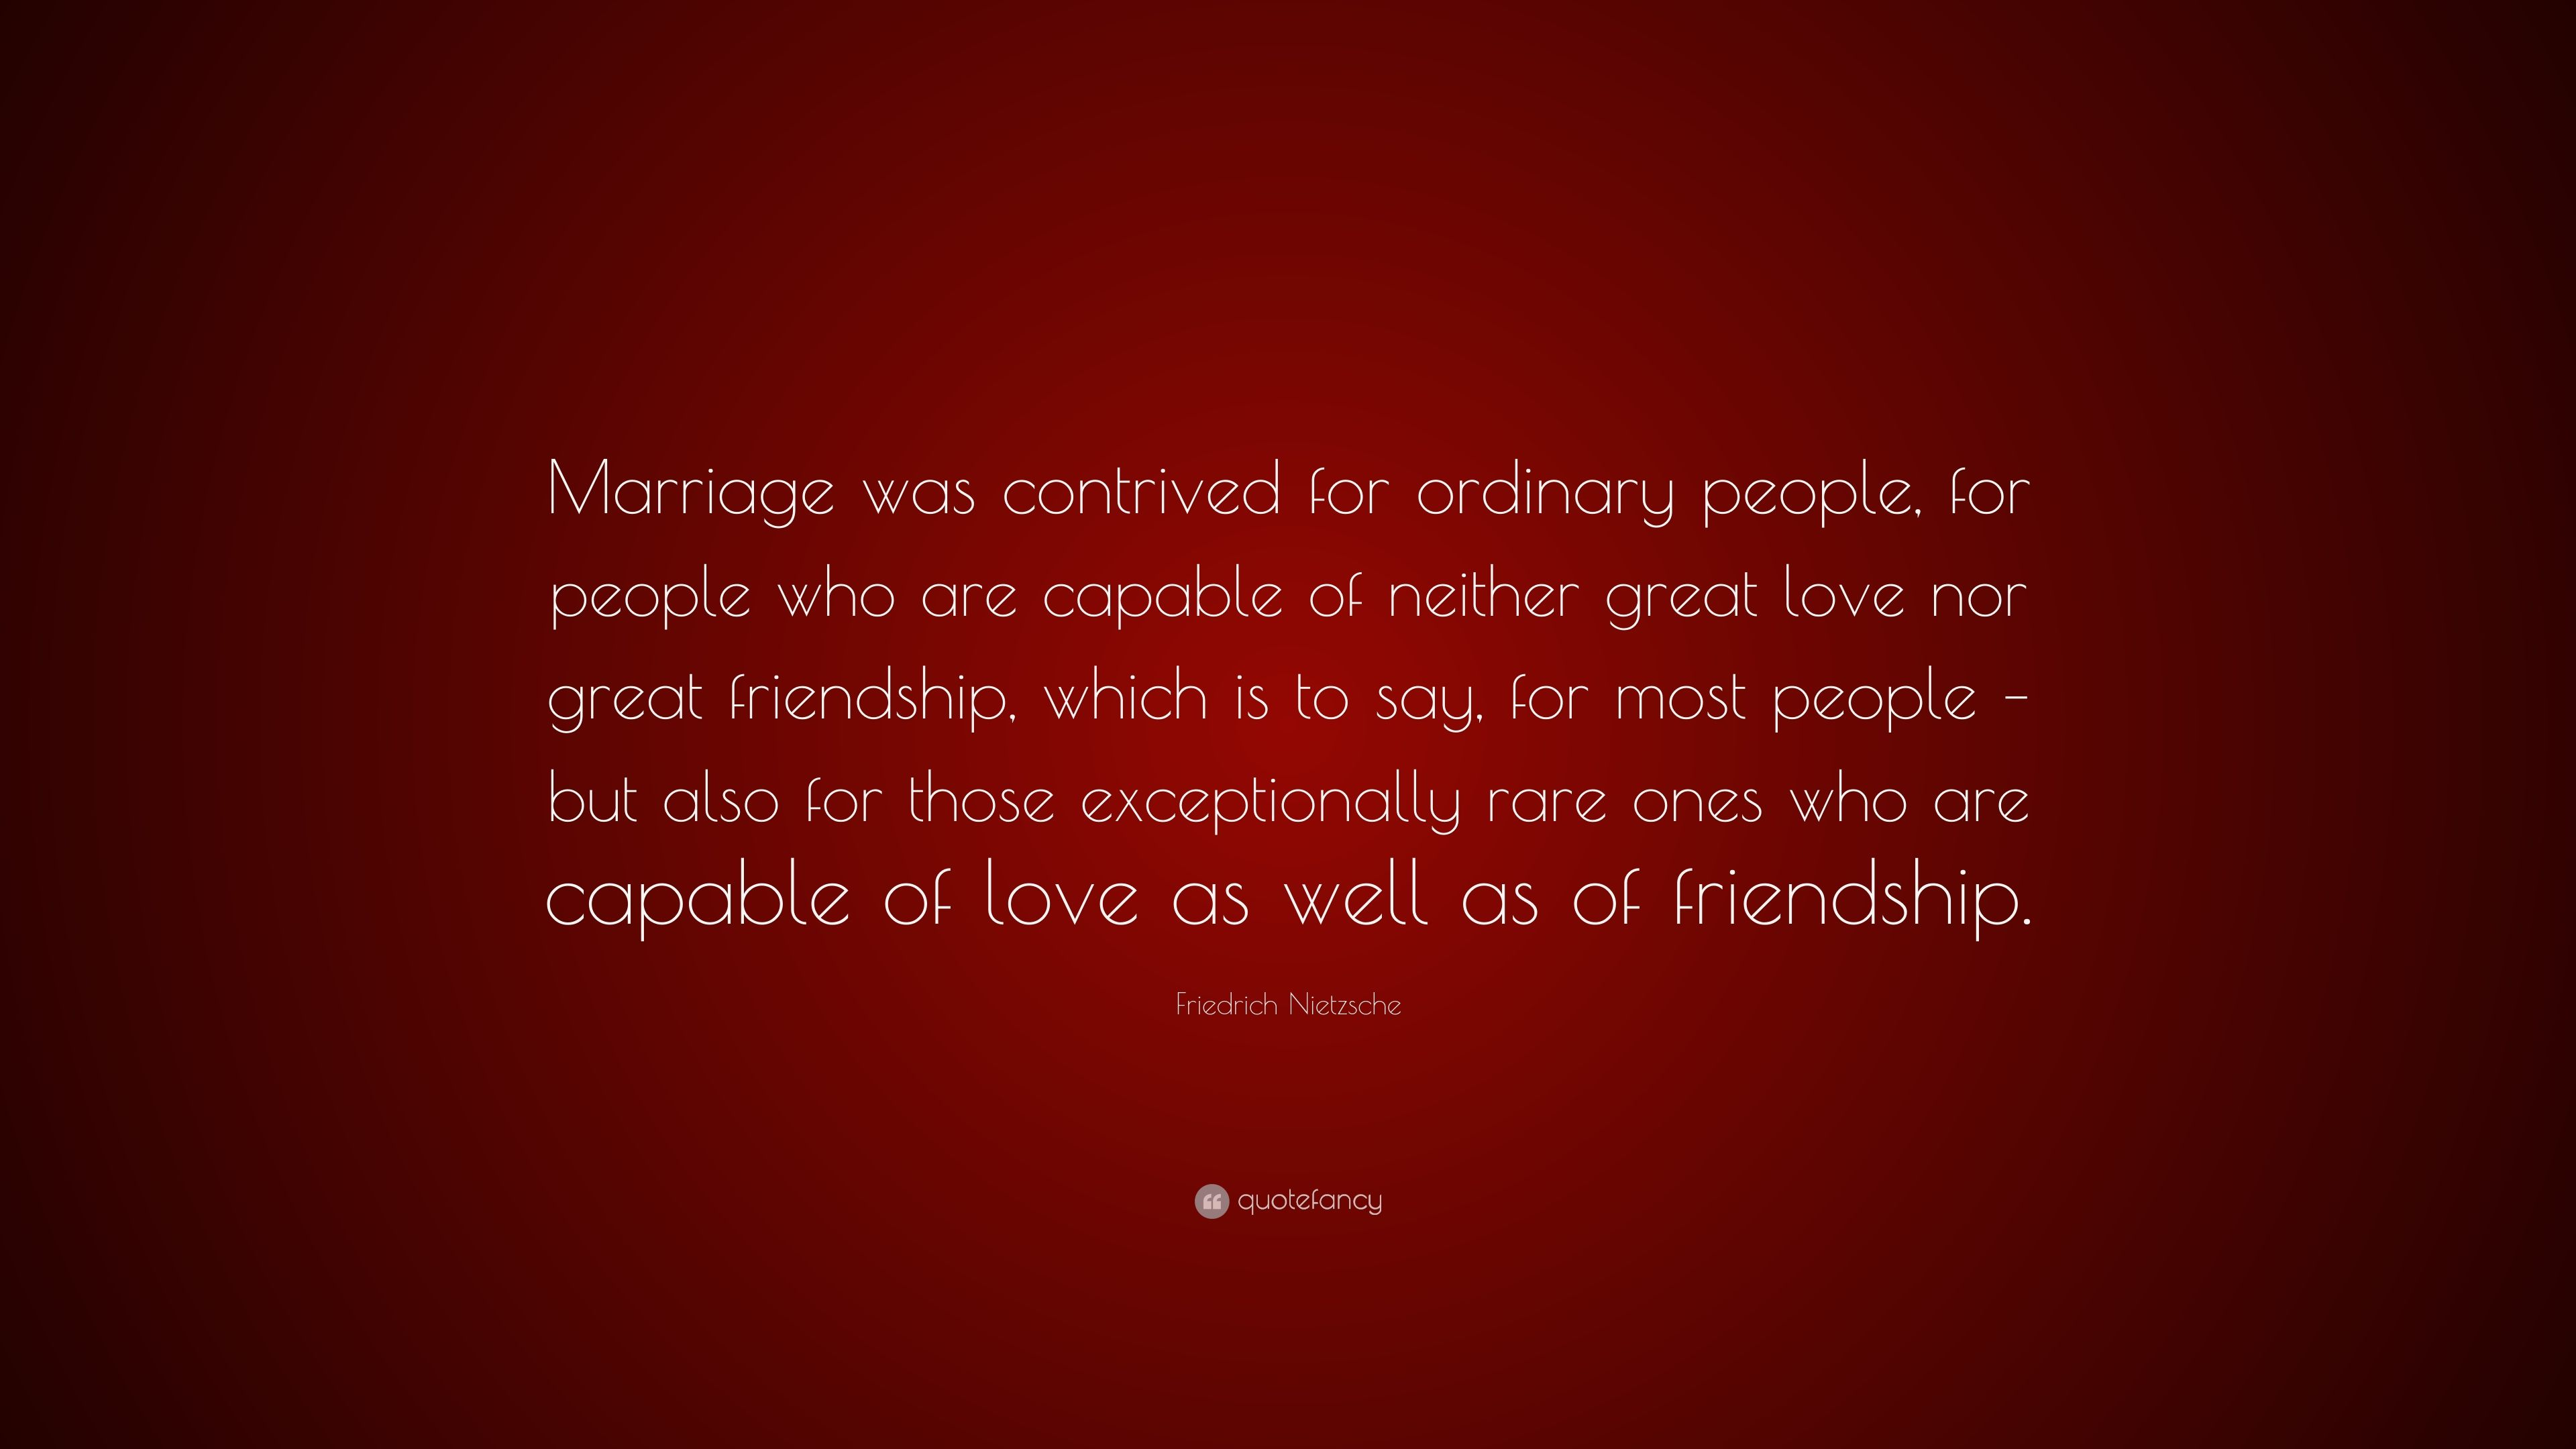 Friedrich Nietzsche Quote Marriage Was Contrived For Ordinary